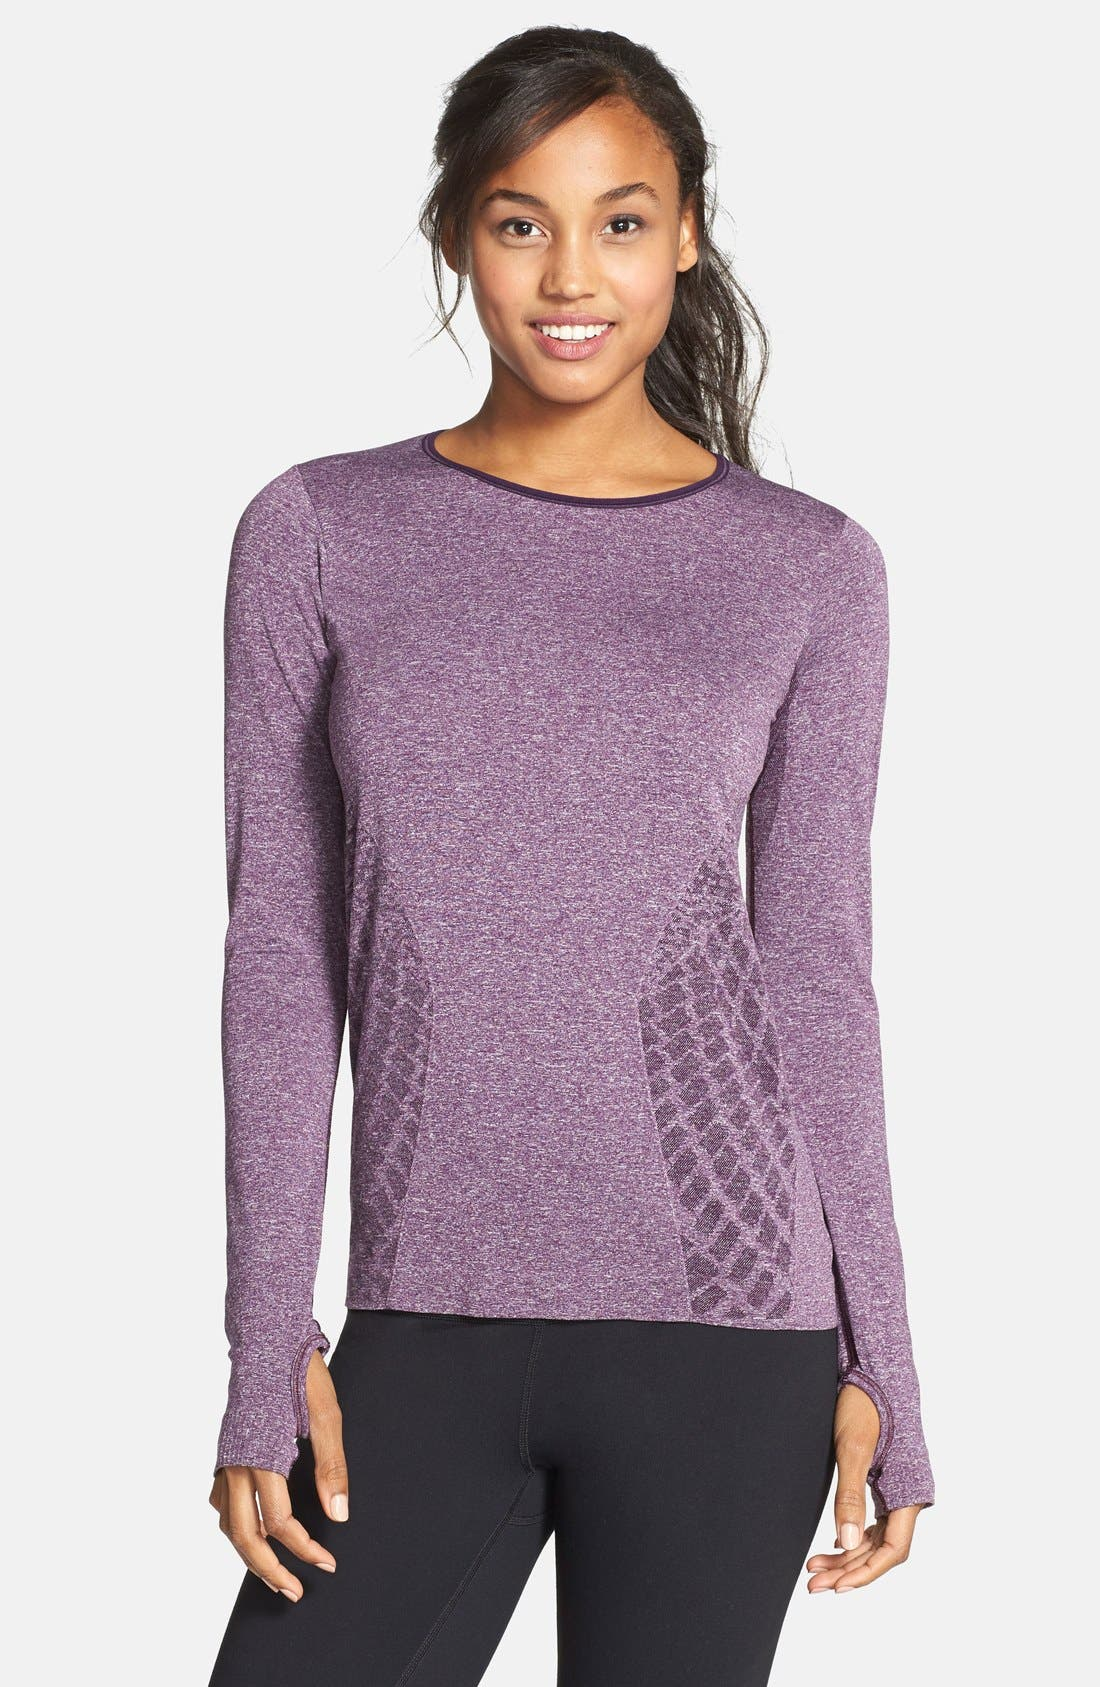 'Made for Movement' Seamless Long Sleeve,                         Main,                         color, Asteroid